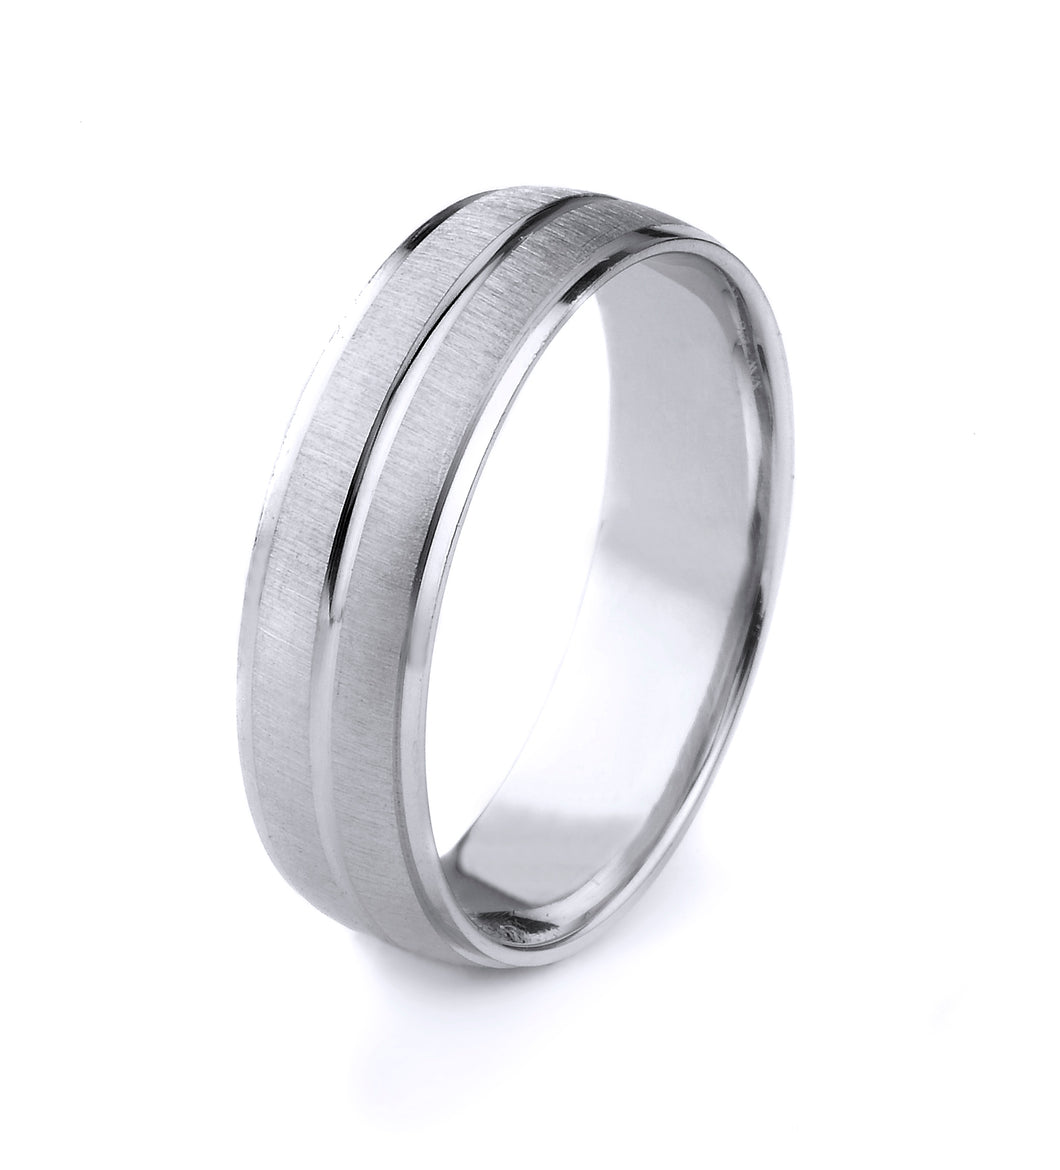 10K GOLD MENS WEDDING BAND WITH SATIN FINISH POLISHED CUT EDGES AND CENTER GROOVE